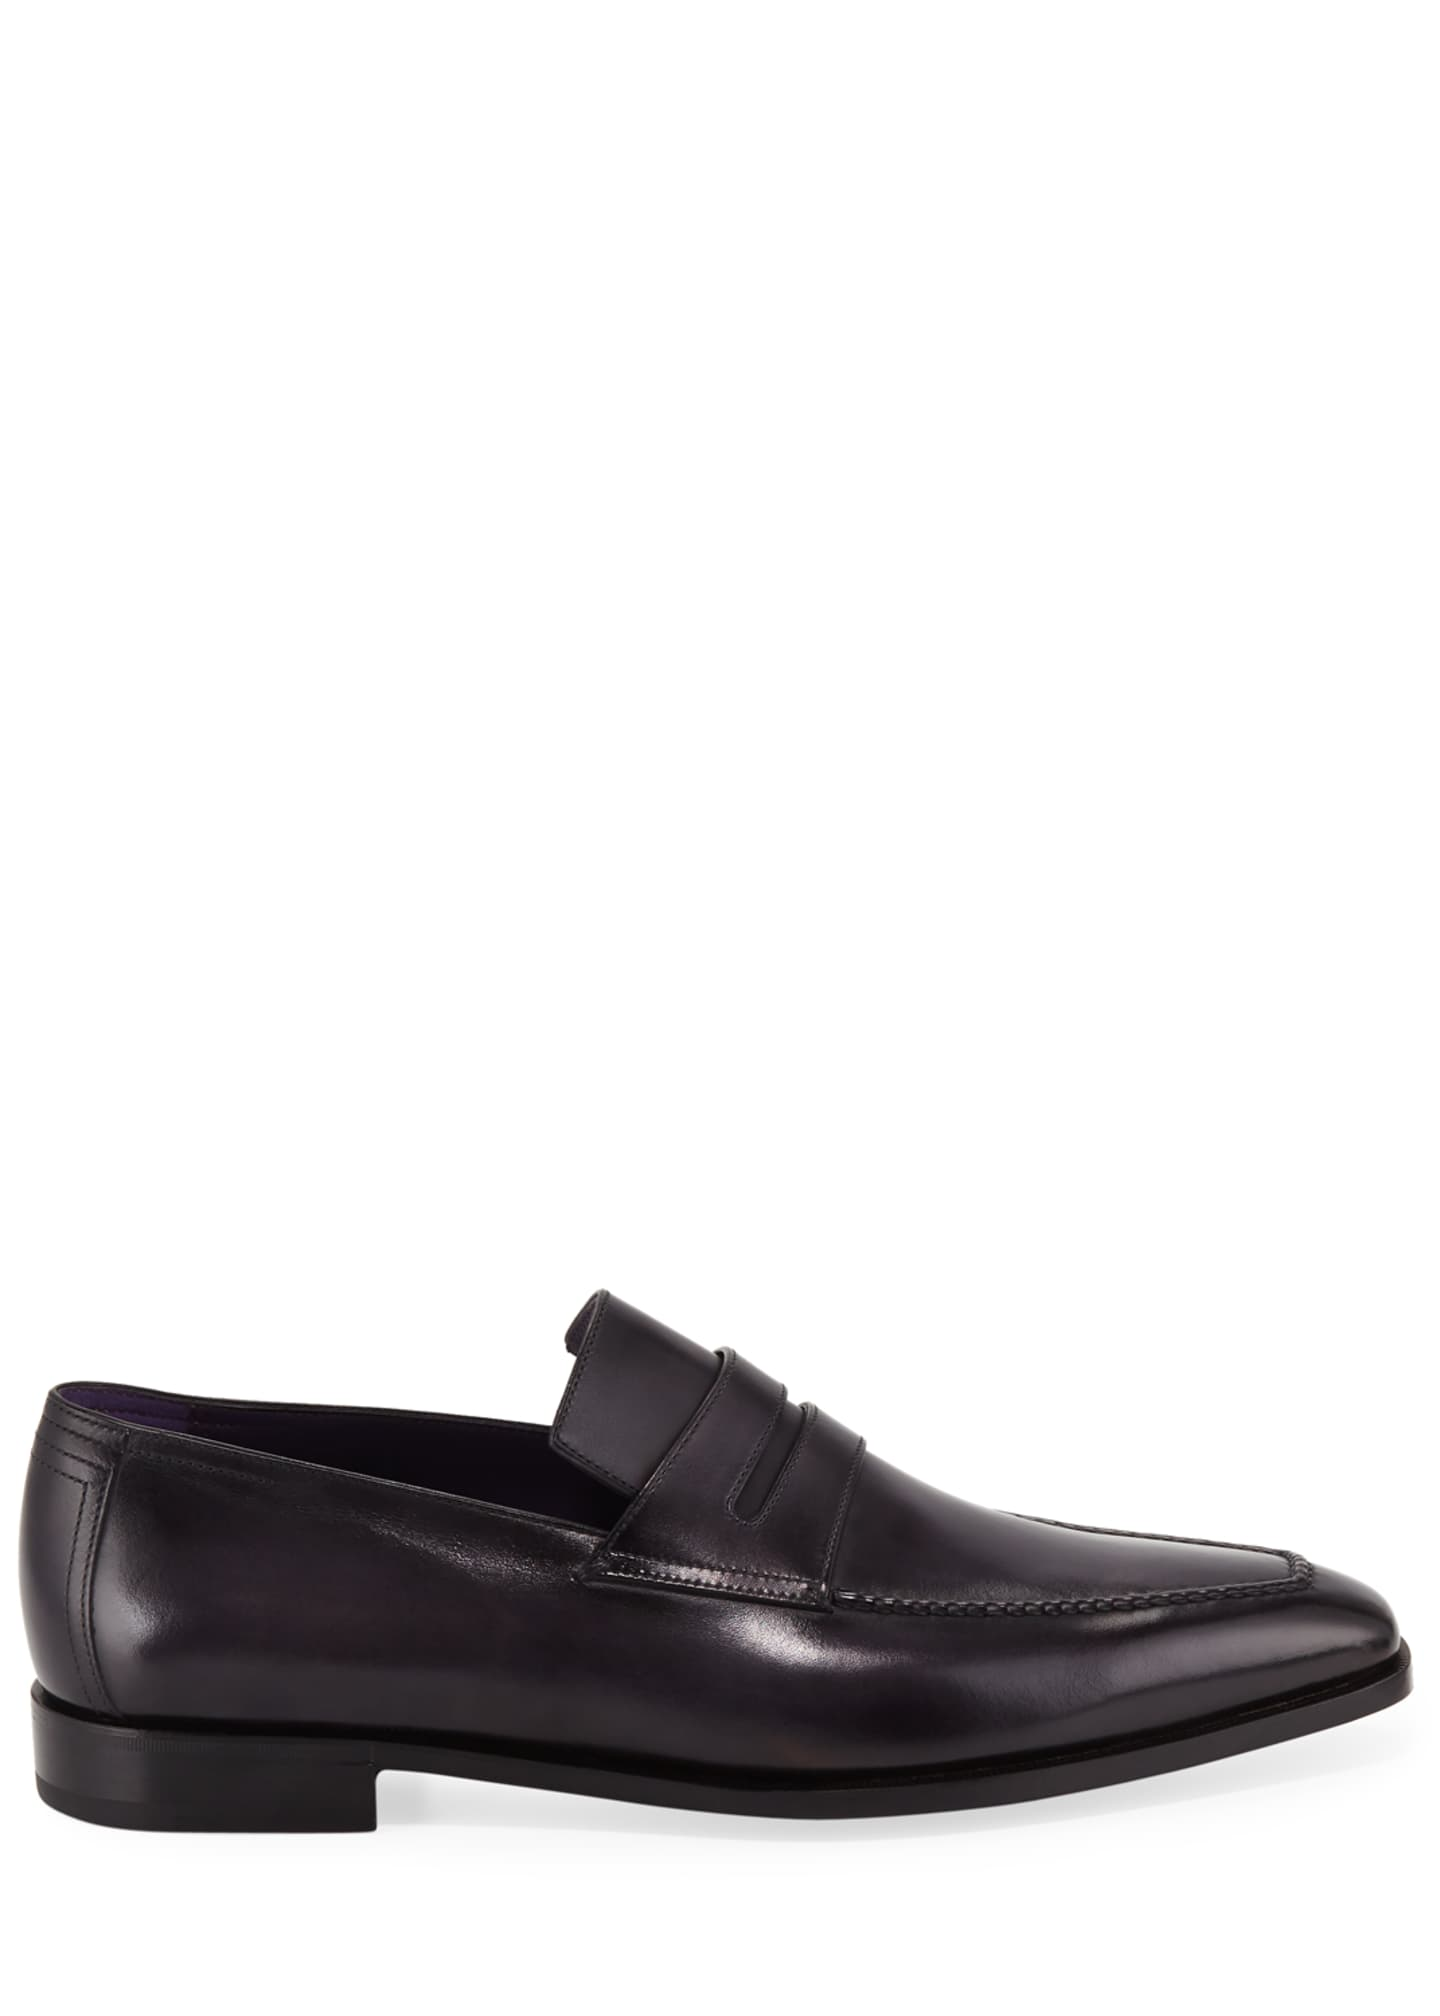 Image 3 of 3: Men's Andy Demesure Calf Leather Loafer